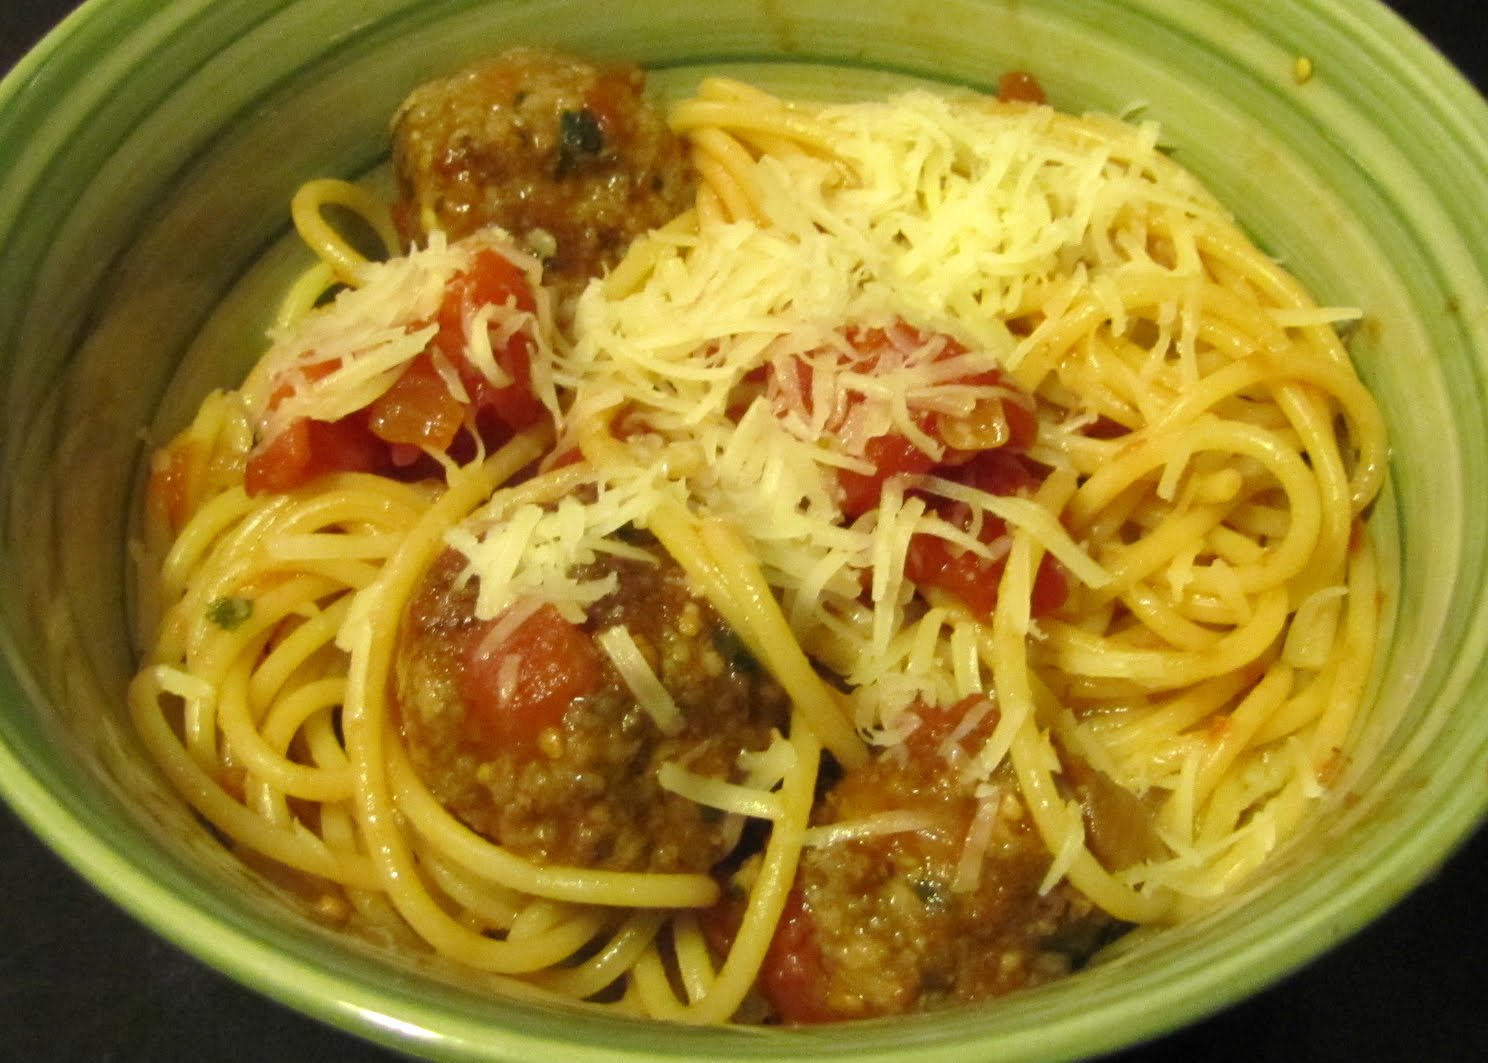 Smells Like Food in Here: Spaghetti and Meatballs